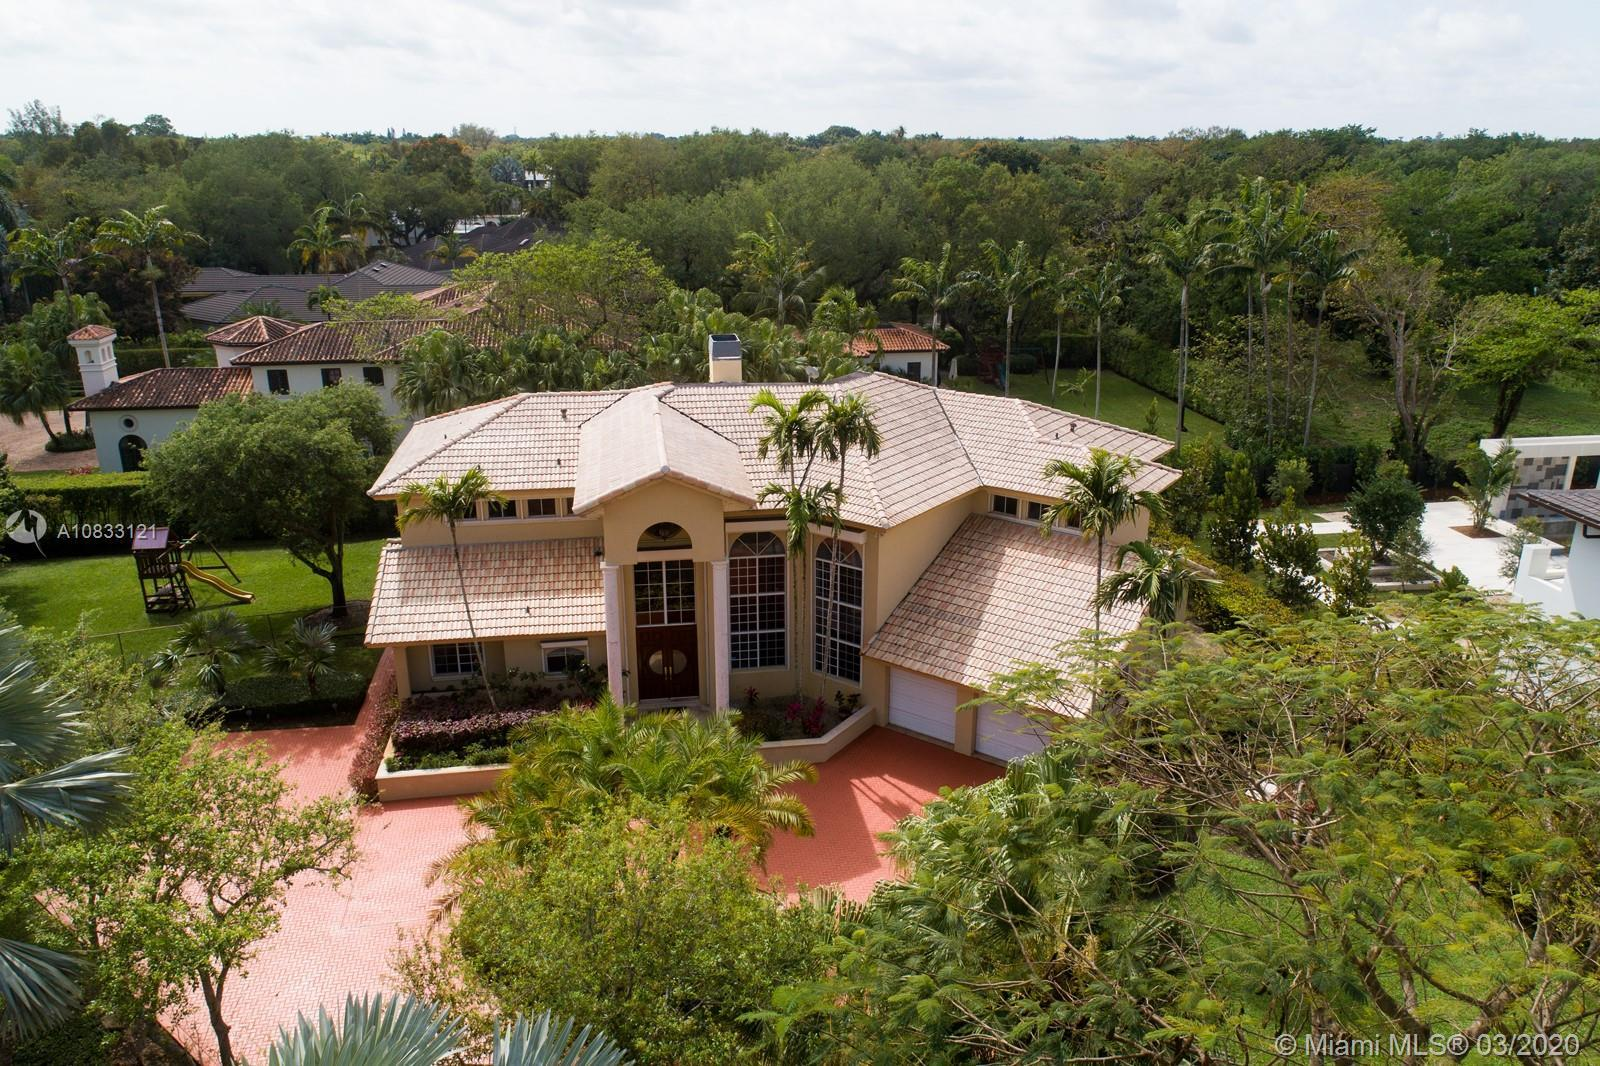 PRIME PINECREST LOCATION! Set back from the street in North Pinecrest and surrounded by manicured ga